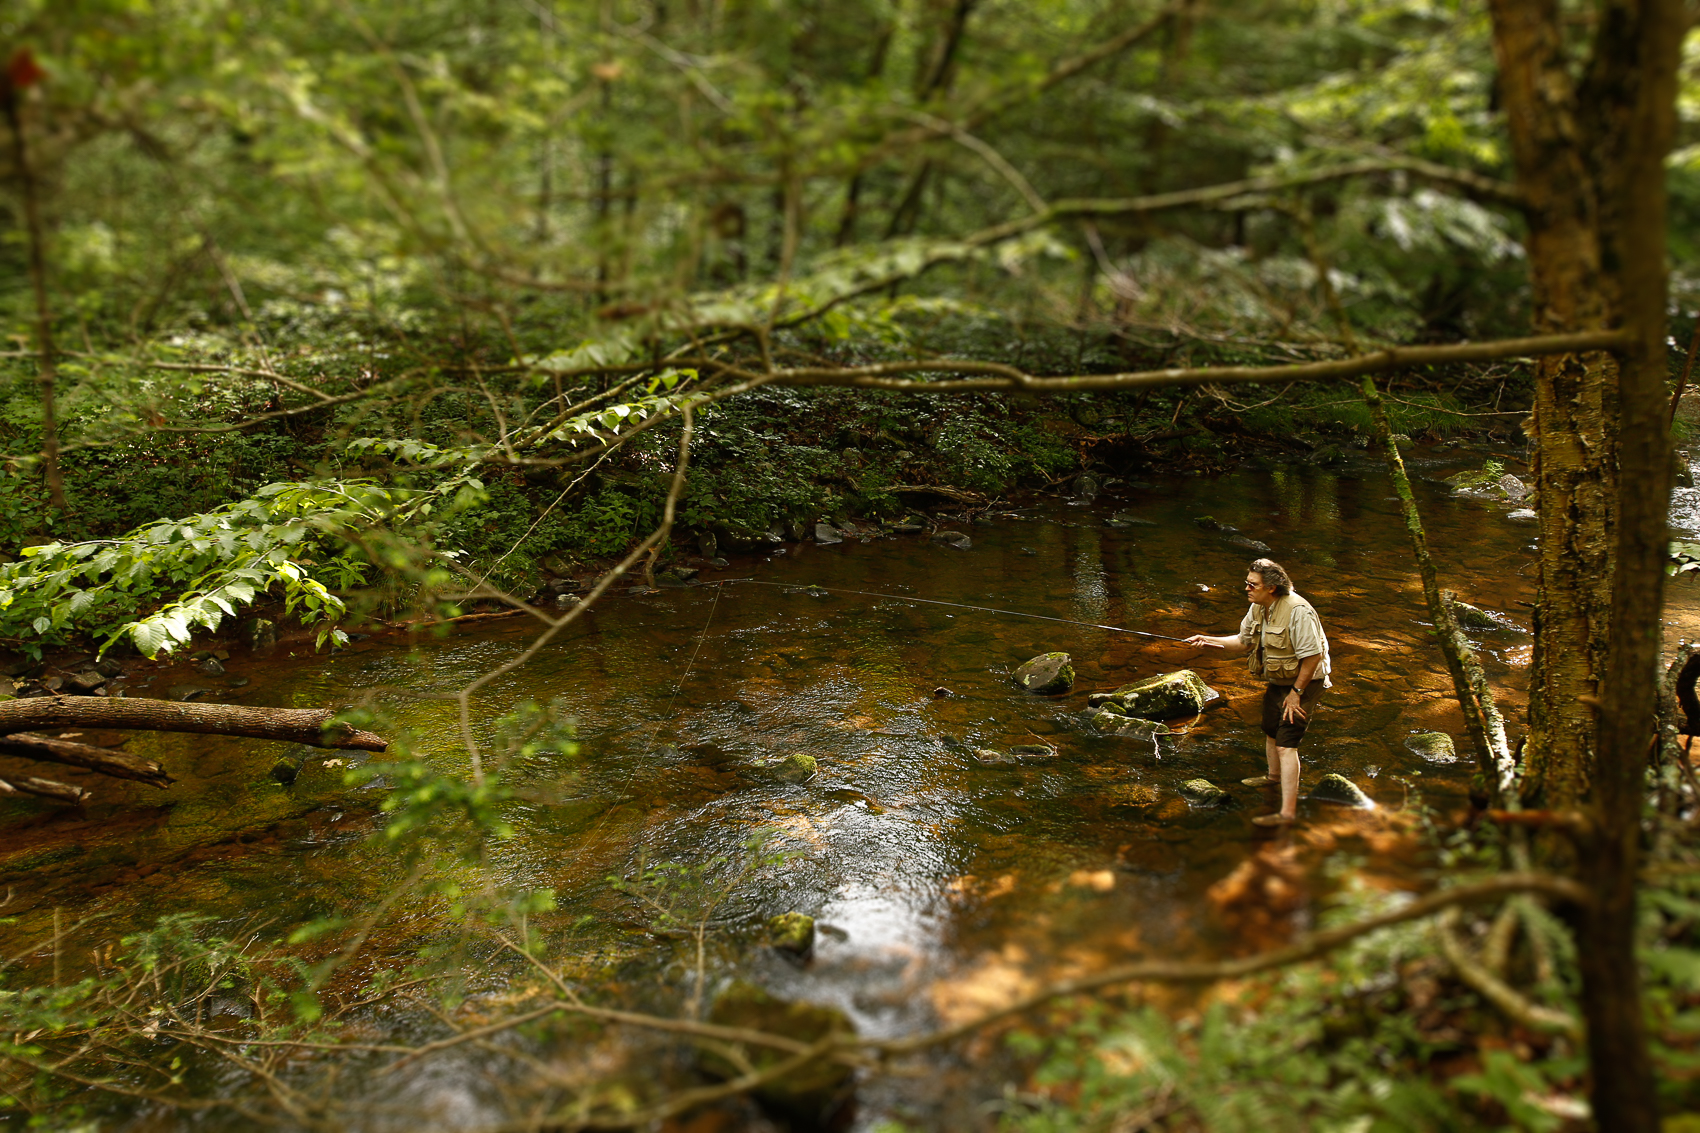 Short film promoting Trout Unlimited's conservation efforts in the George Washington and Jefferson National Forests